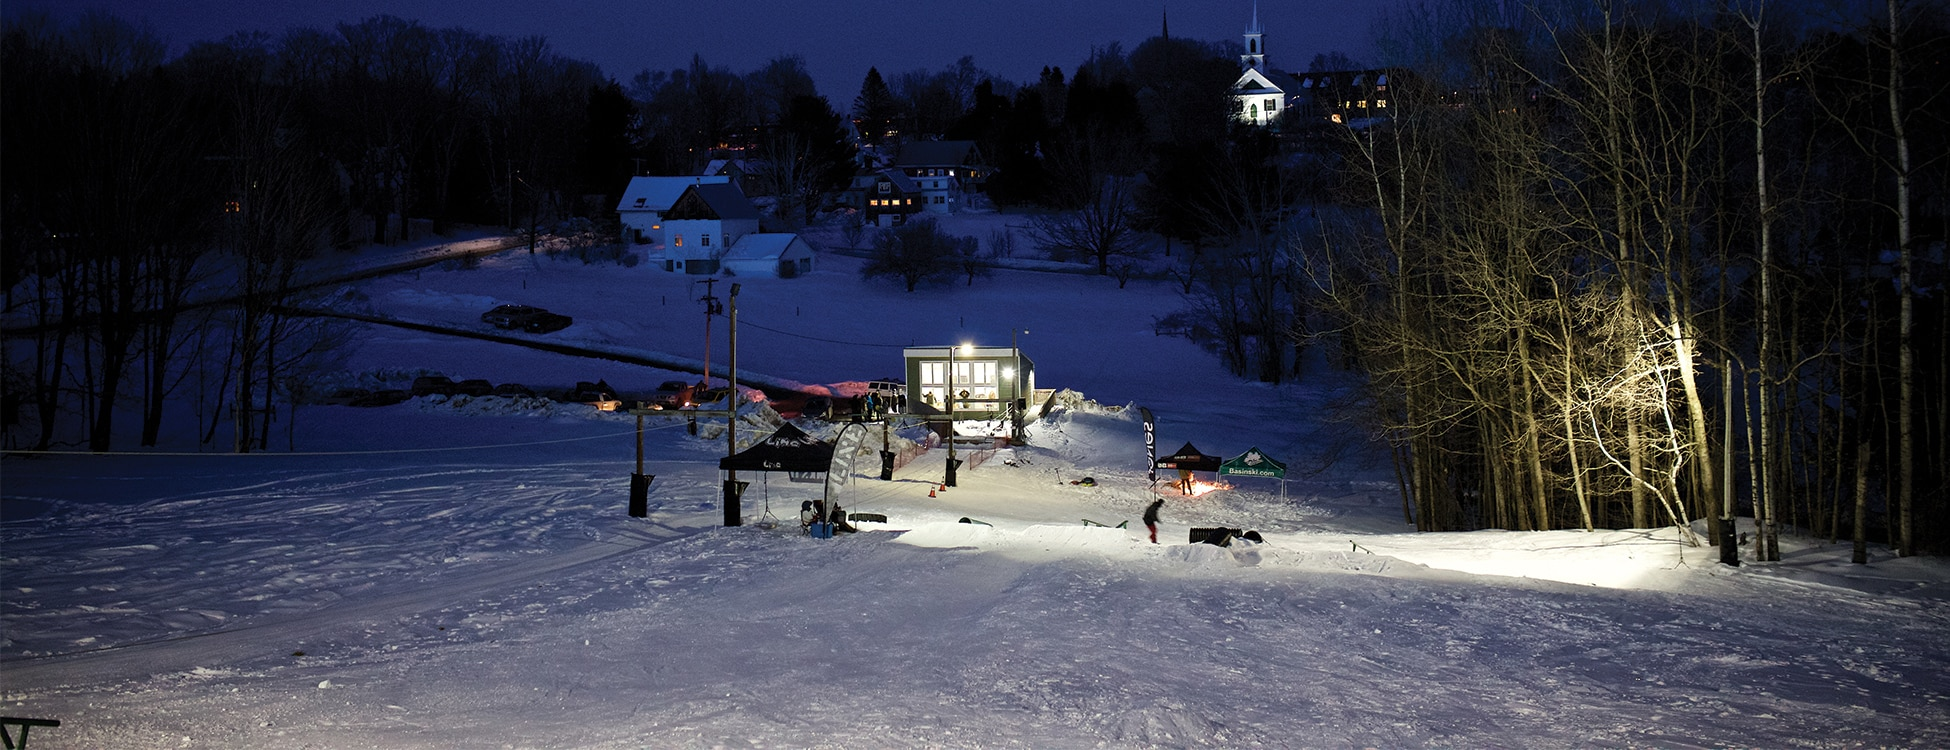 Winter, snow, ski hill, rope tow, Randolph Center campus, night, lights